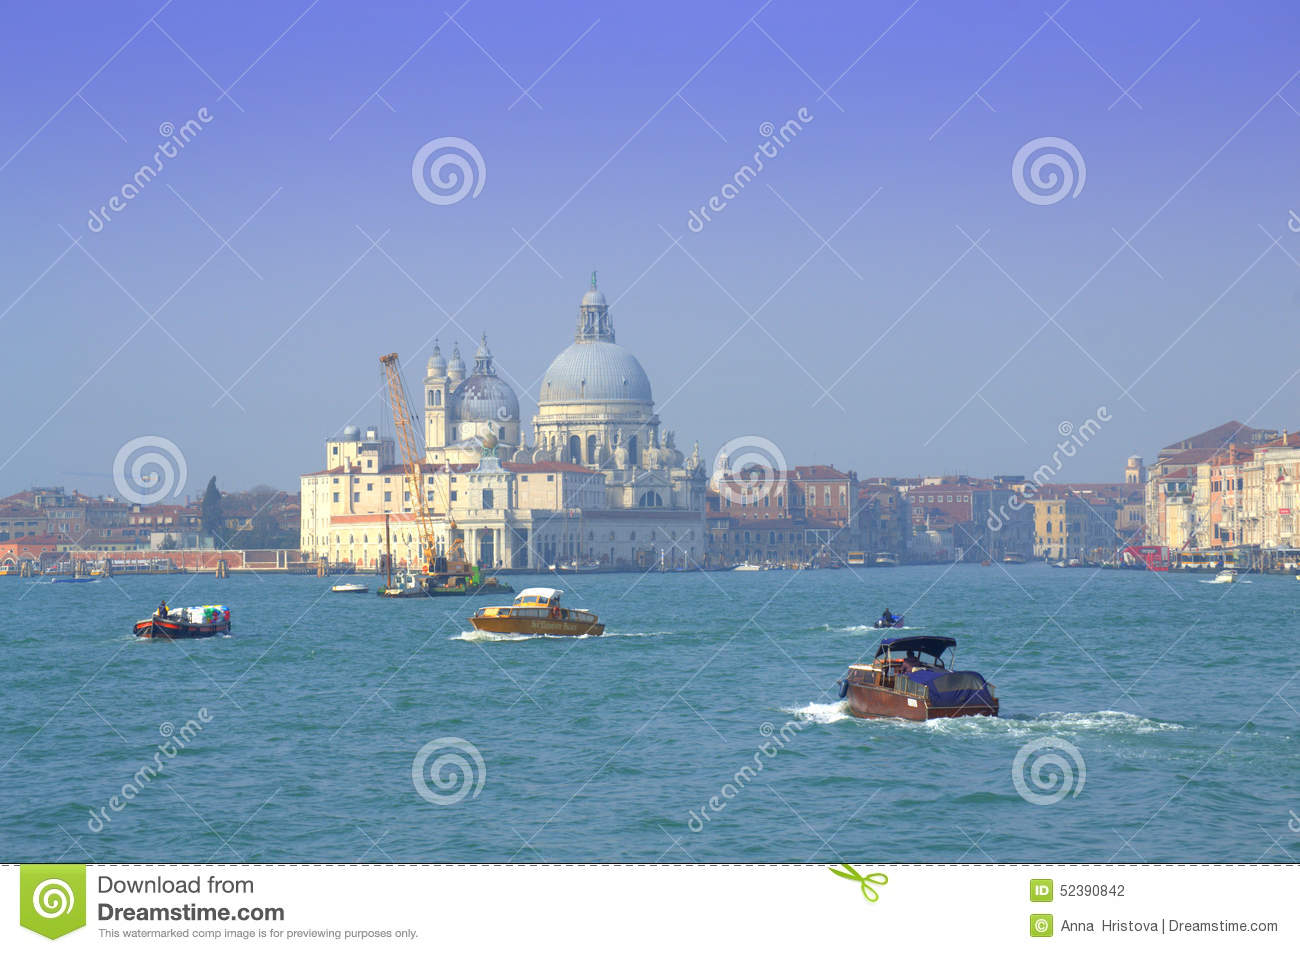 Boating in Venice lagoon